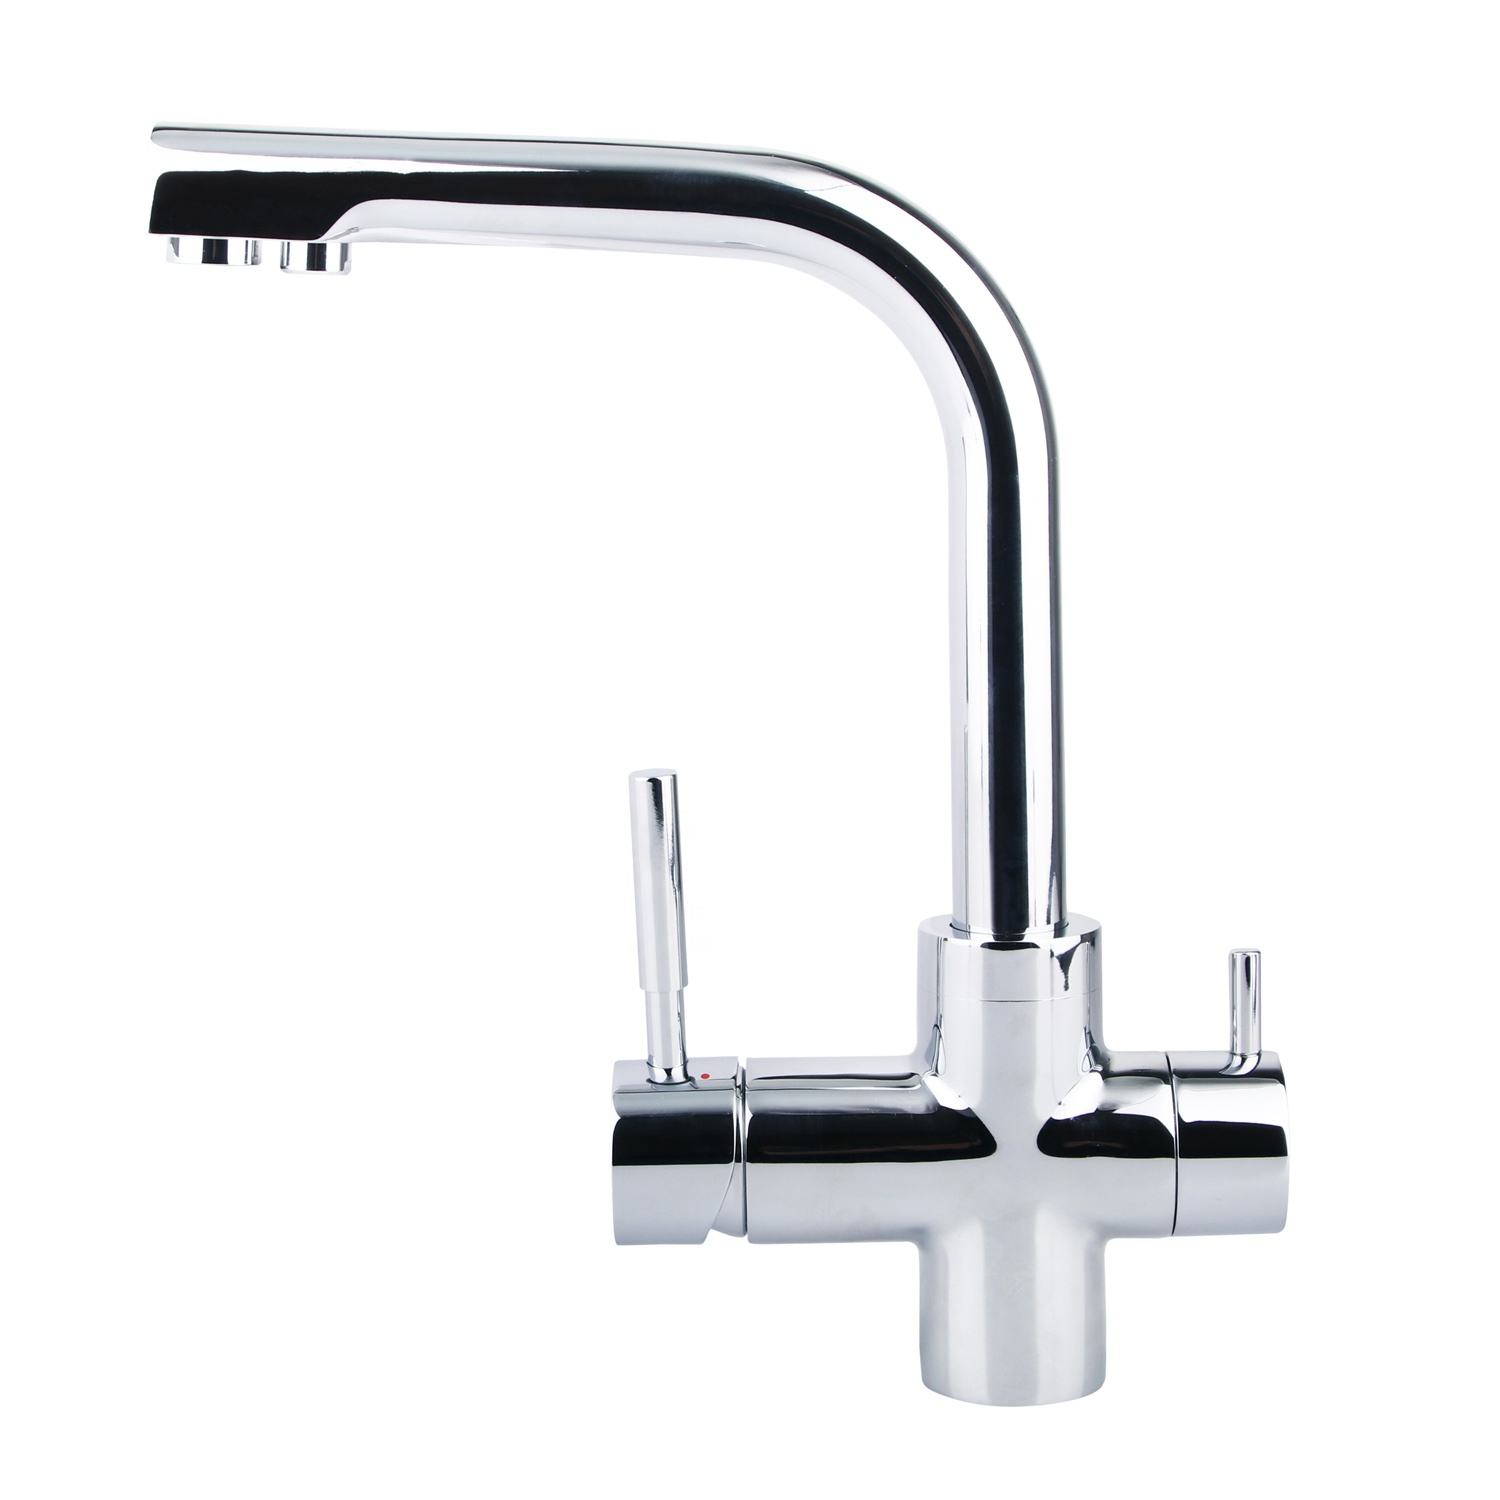 Luxury kitchen faucet for RO water and tap water